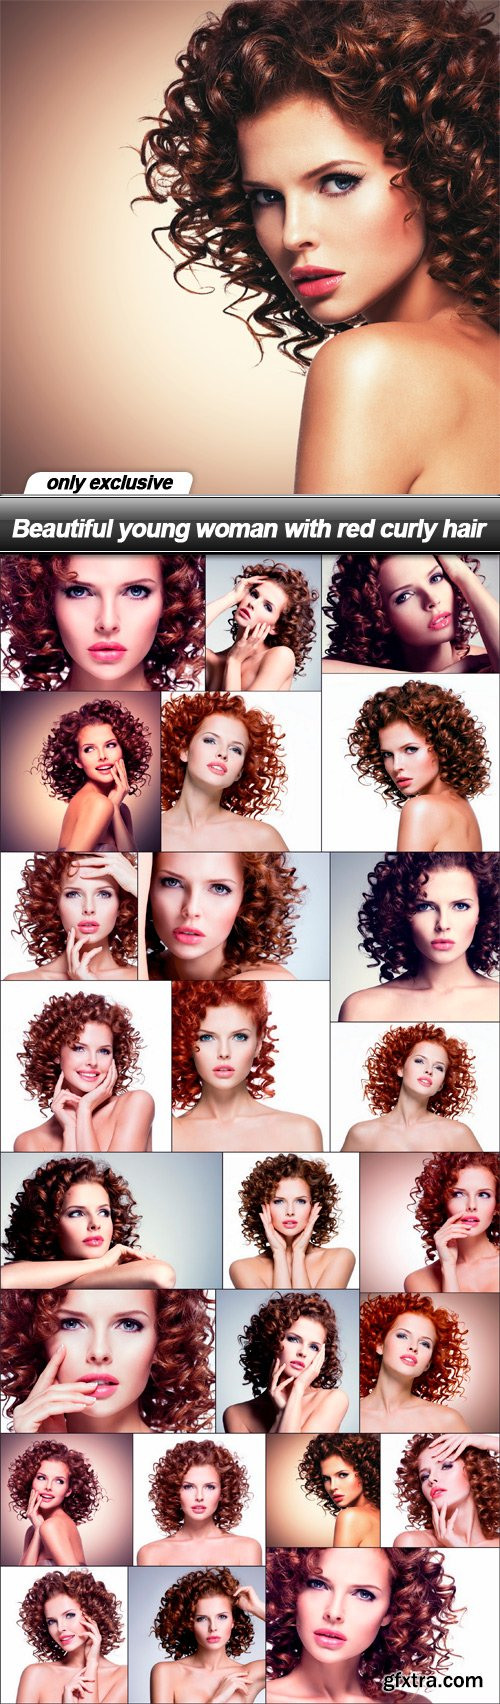 Beautiful young woman with red curly hair - 25 UHQ JPEG